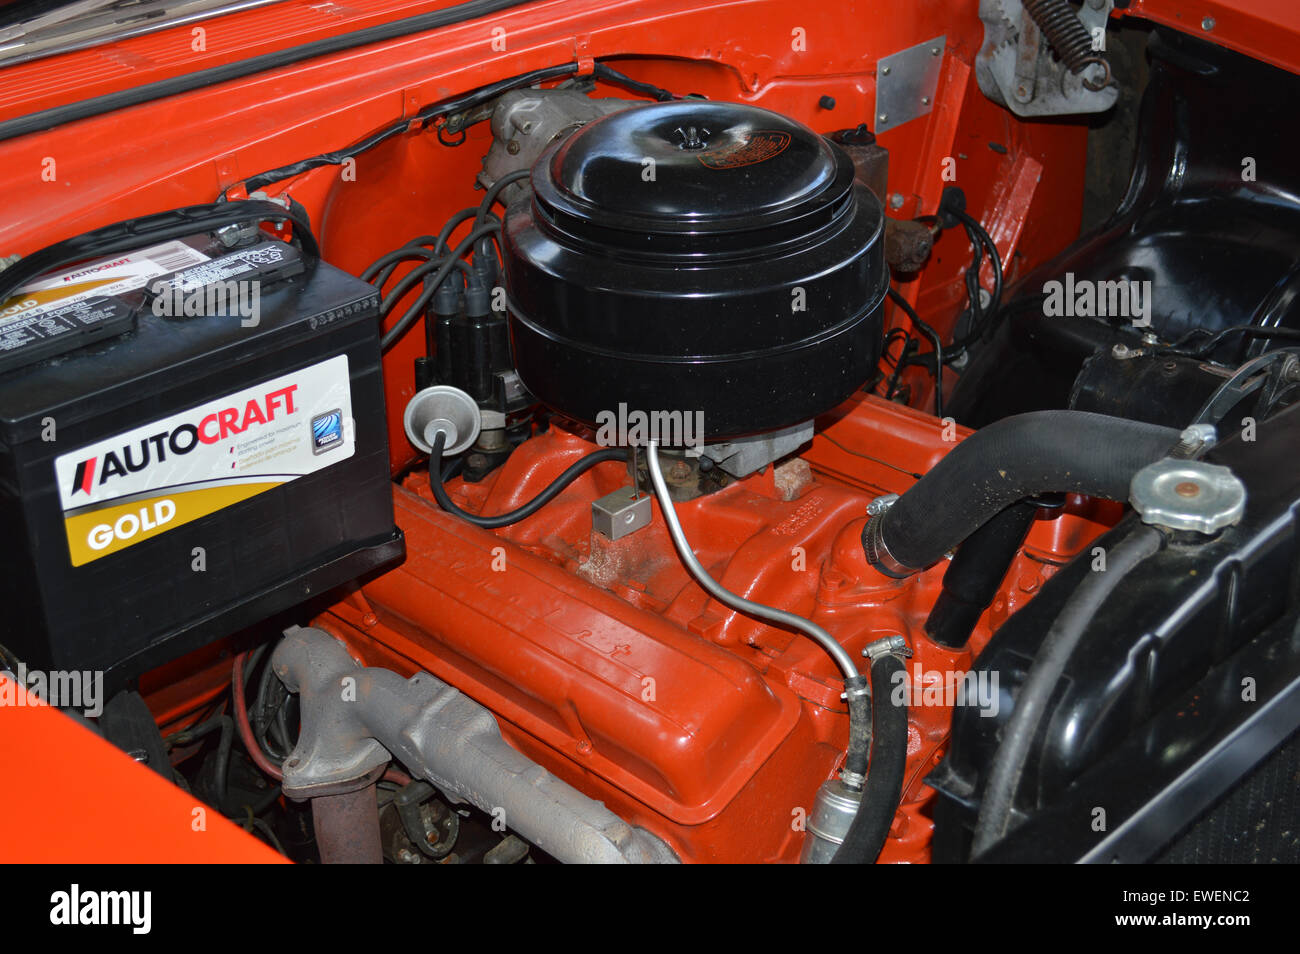 A 1955 Chevrolet 265 V8 Engine Stock Photo Royalty Free